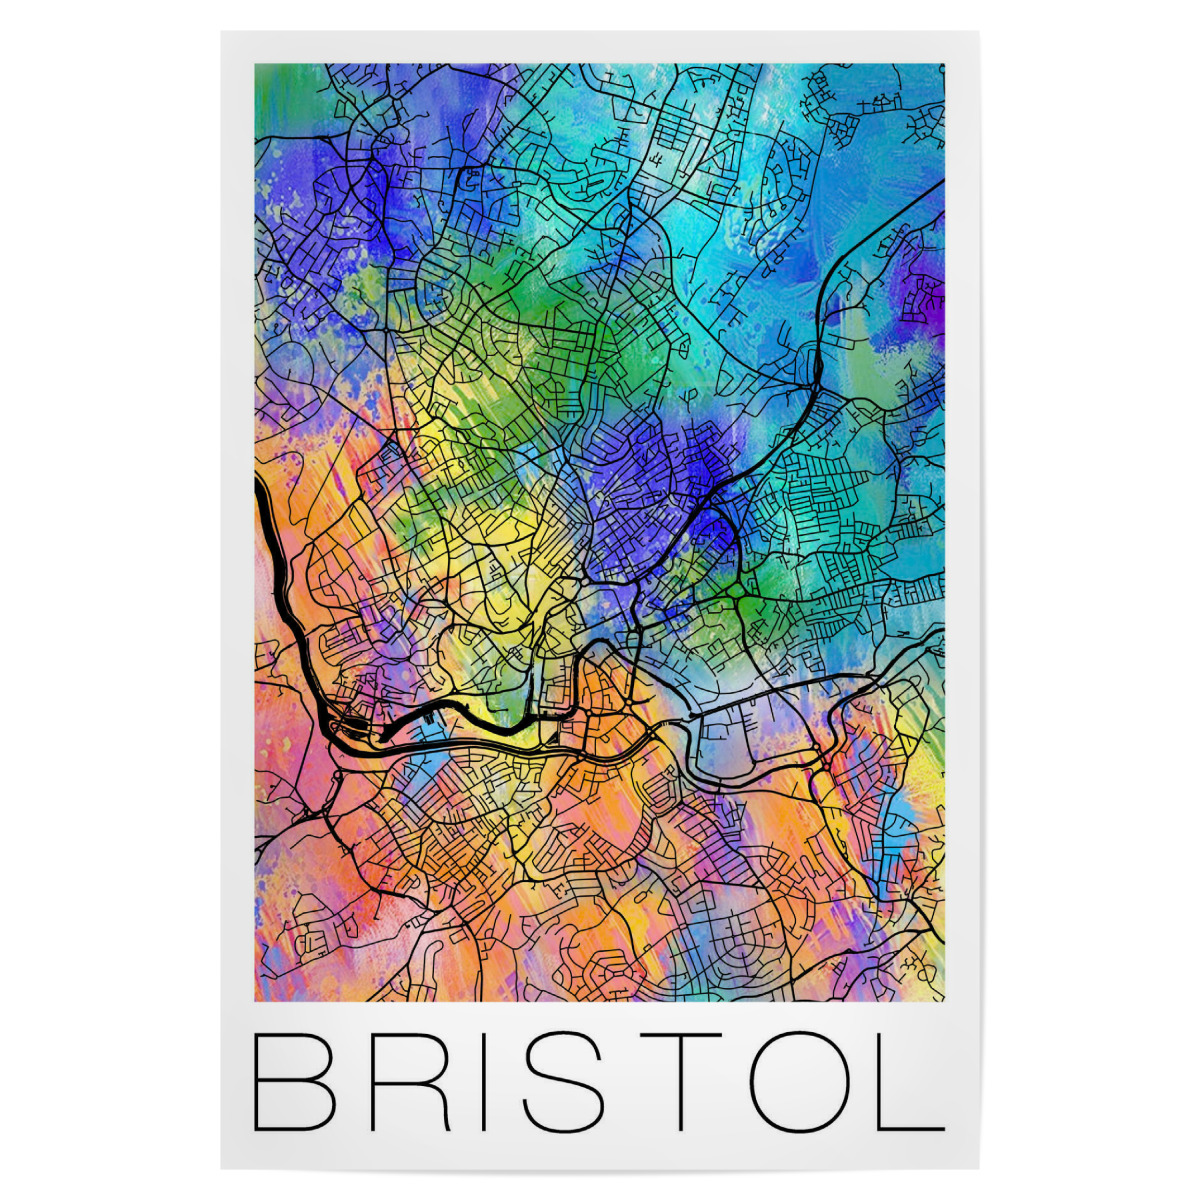 Map Of Bristol England.Purchase The Retro Map Of Bristol England As A Poster At Artboxone